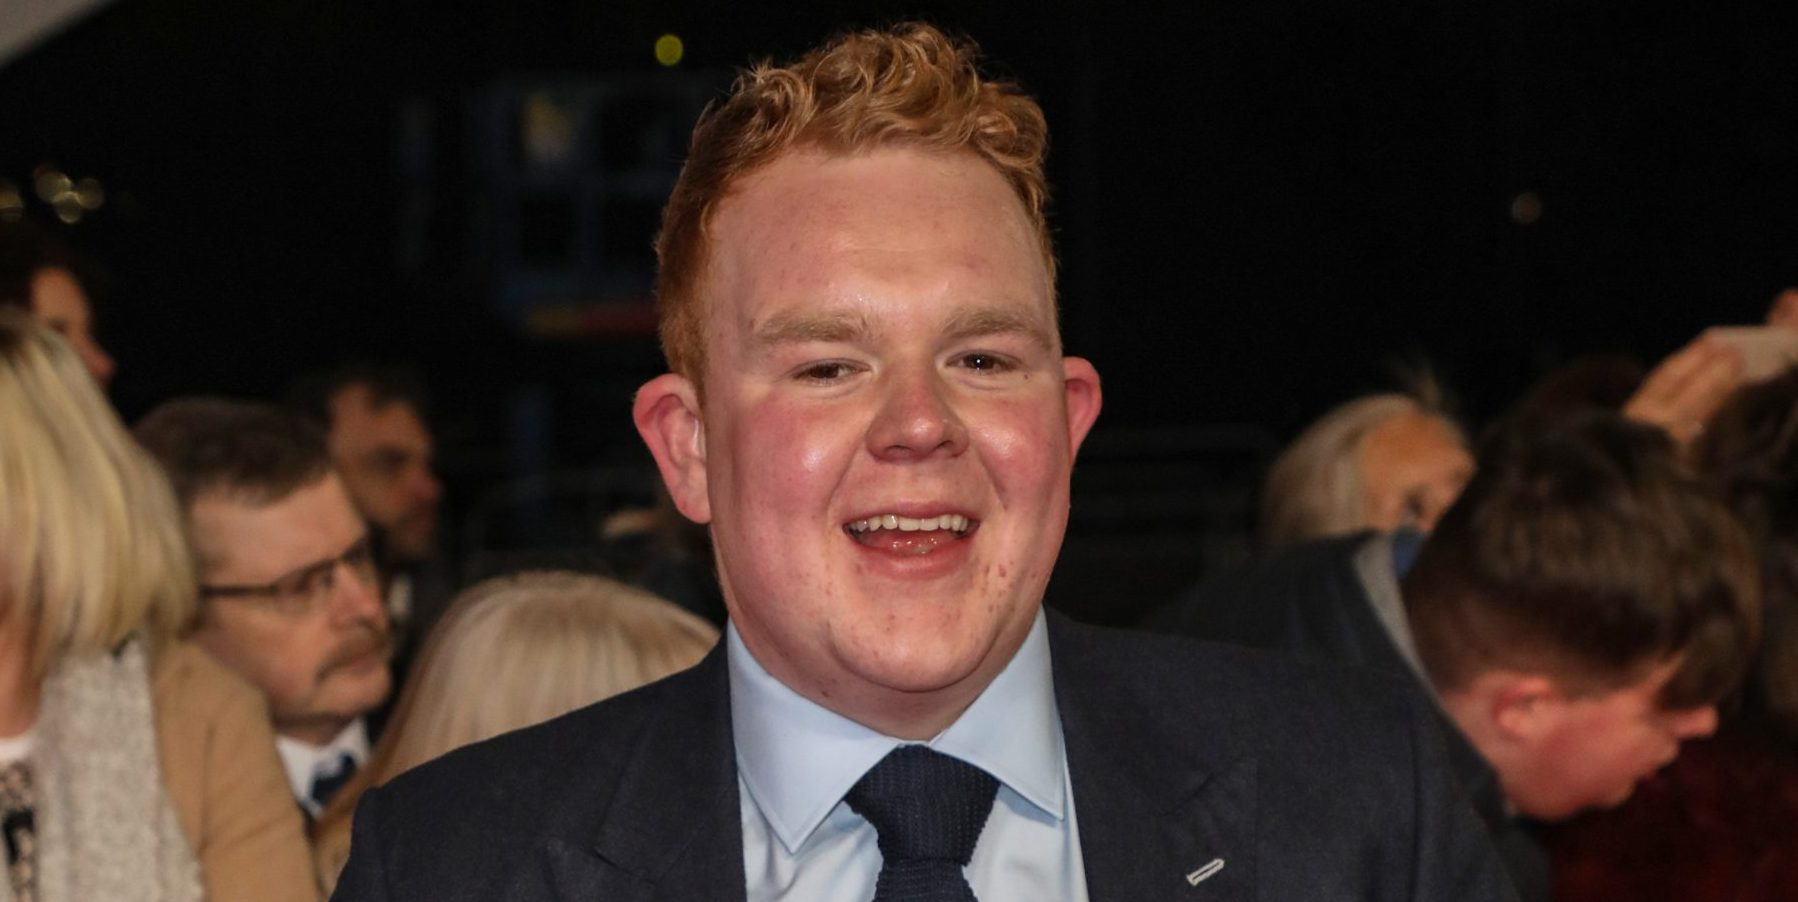 Coronation Street's Colson Smith shows off incredible weight loss as he dresses up for awards ceremony